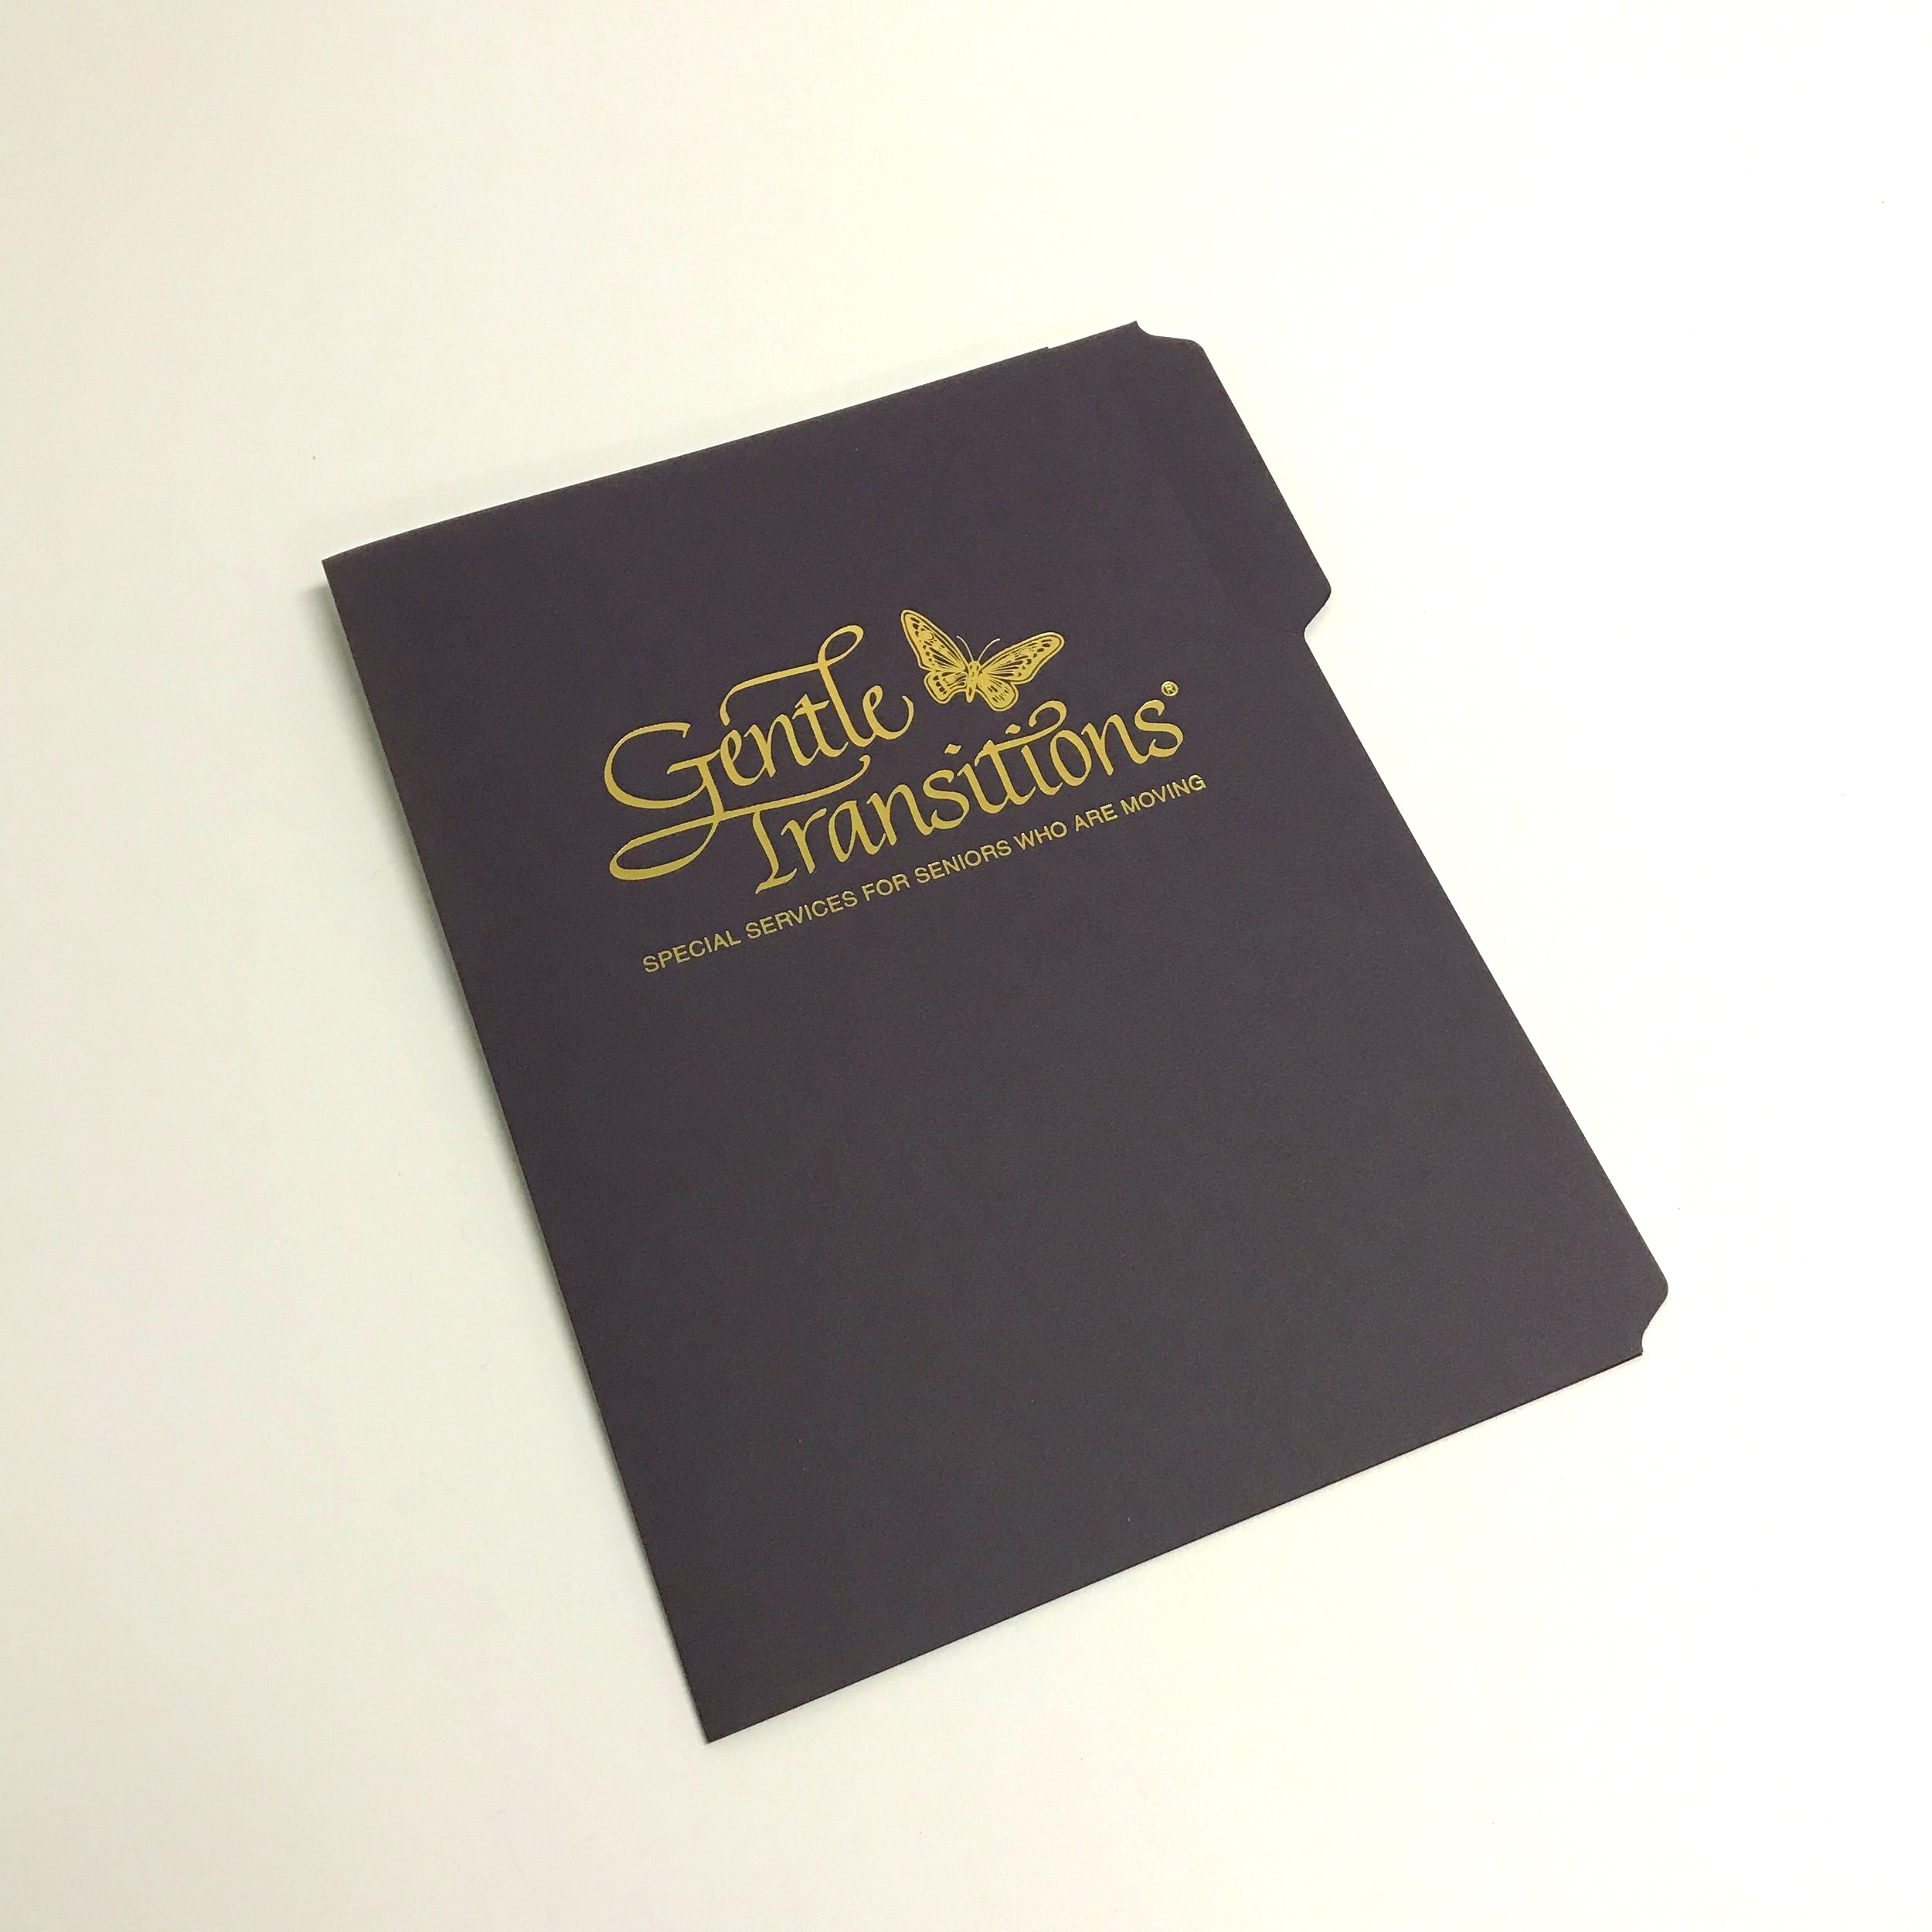 Unique die cut and foil stamped folder for corporate use printed in Minnesota